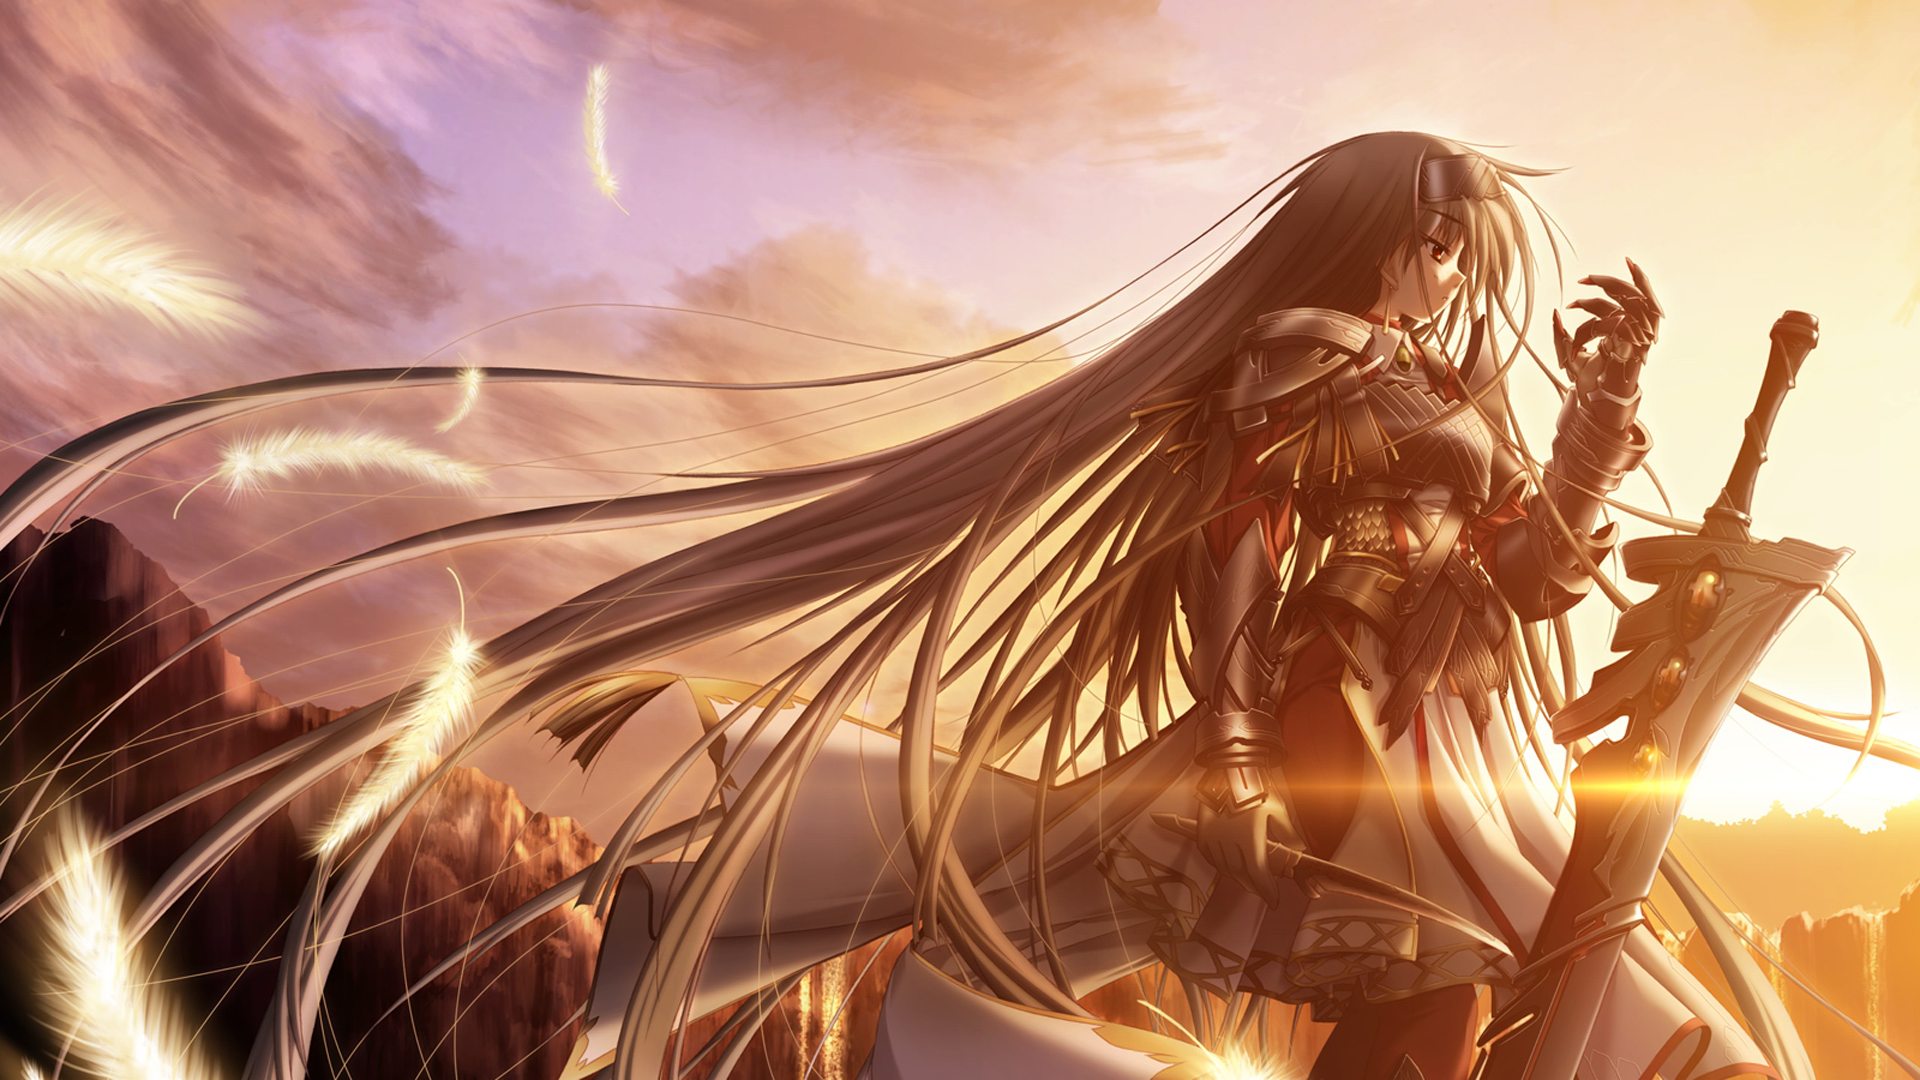 Anime Hd Wallpapers Best Wallpapers